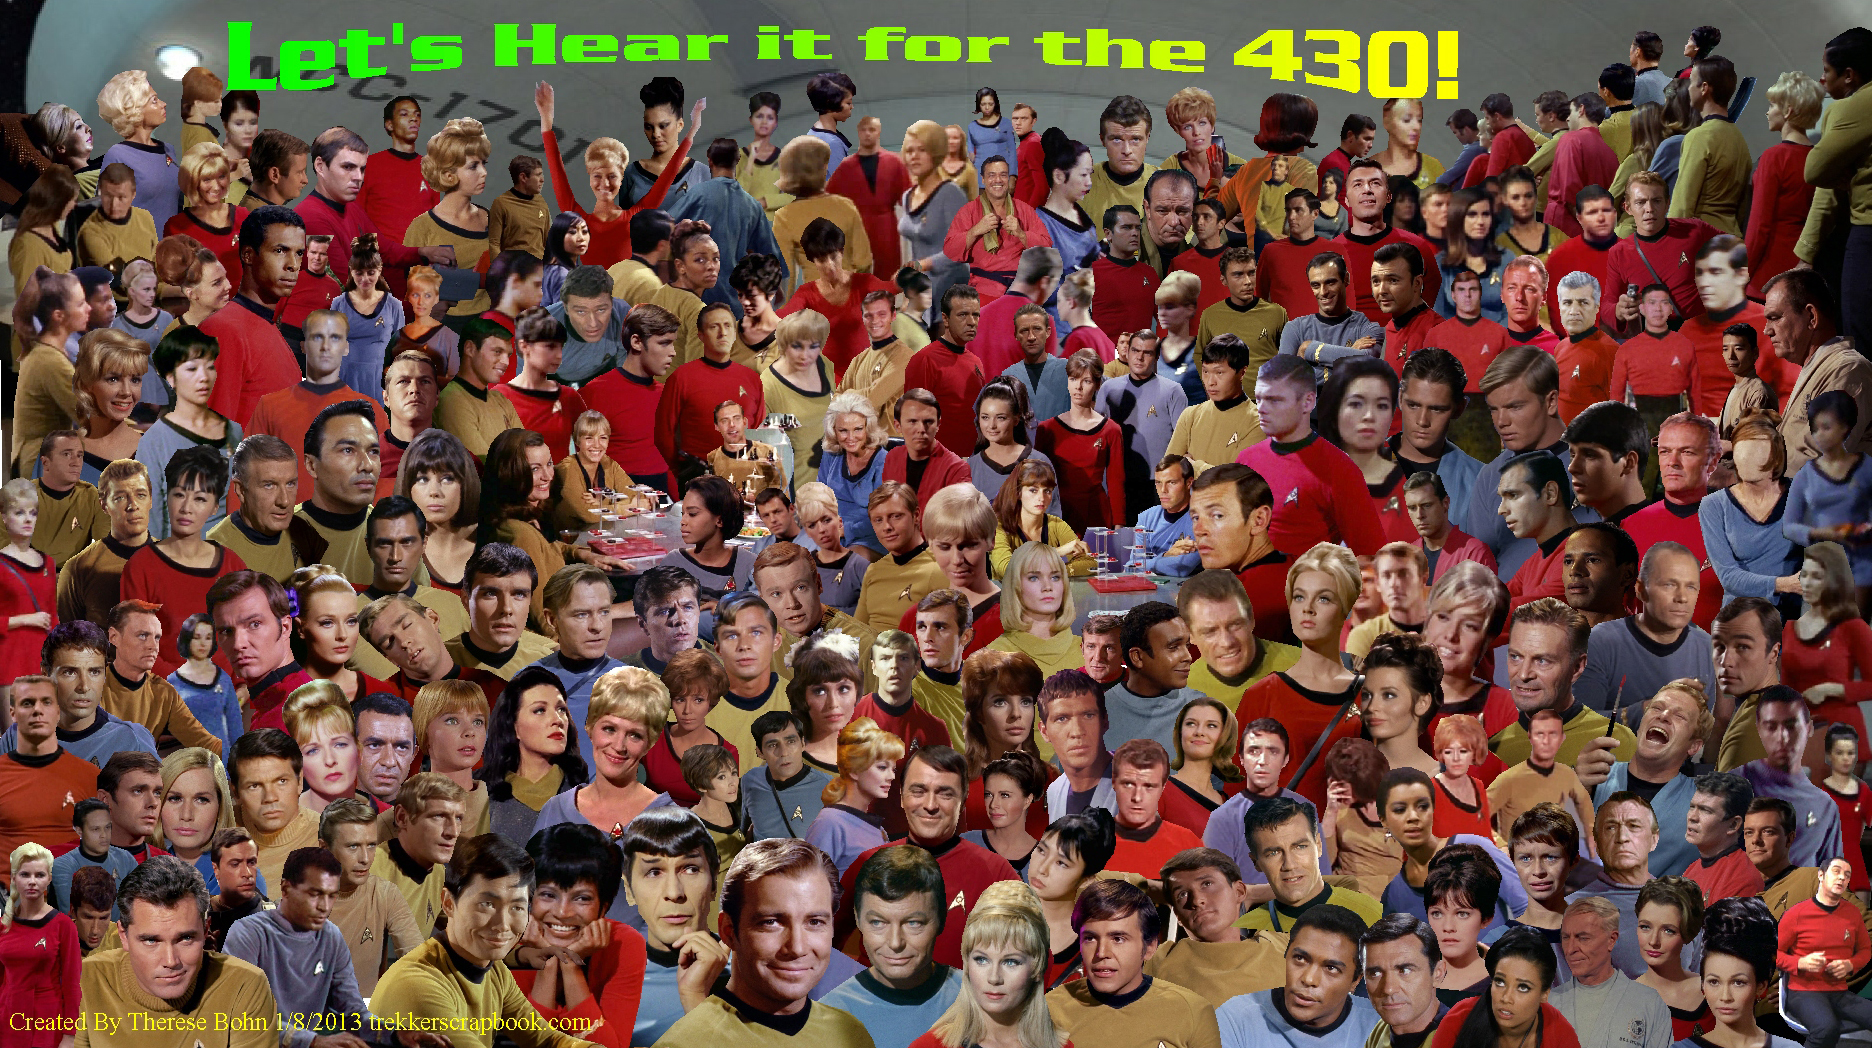 the 430 poster copy